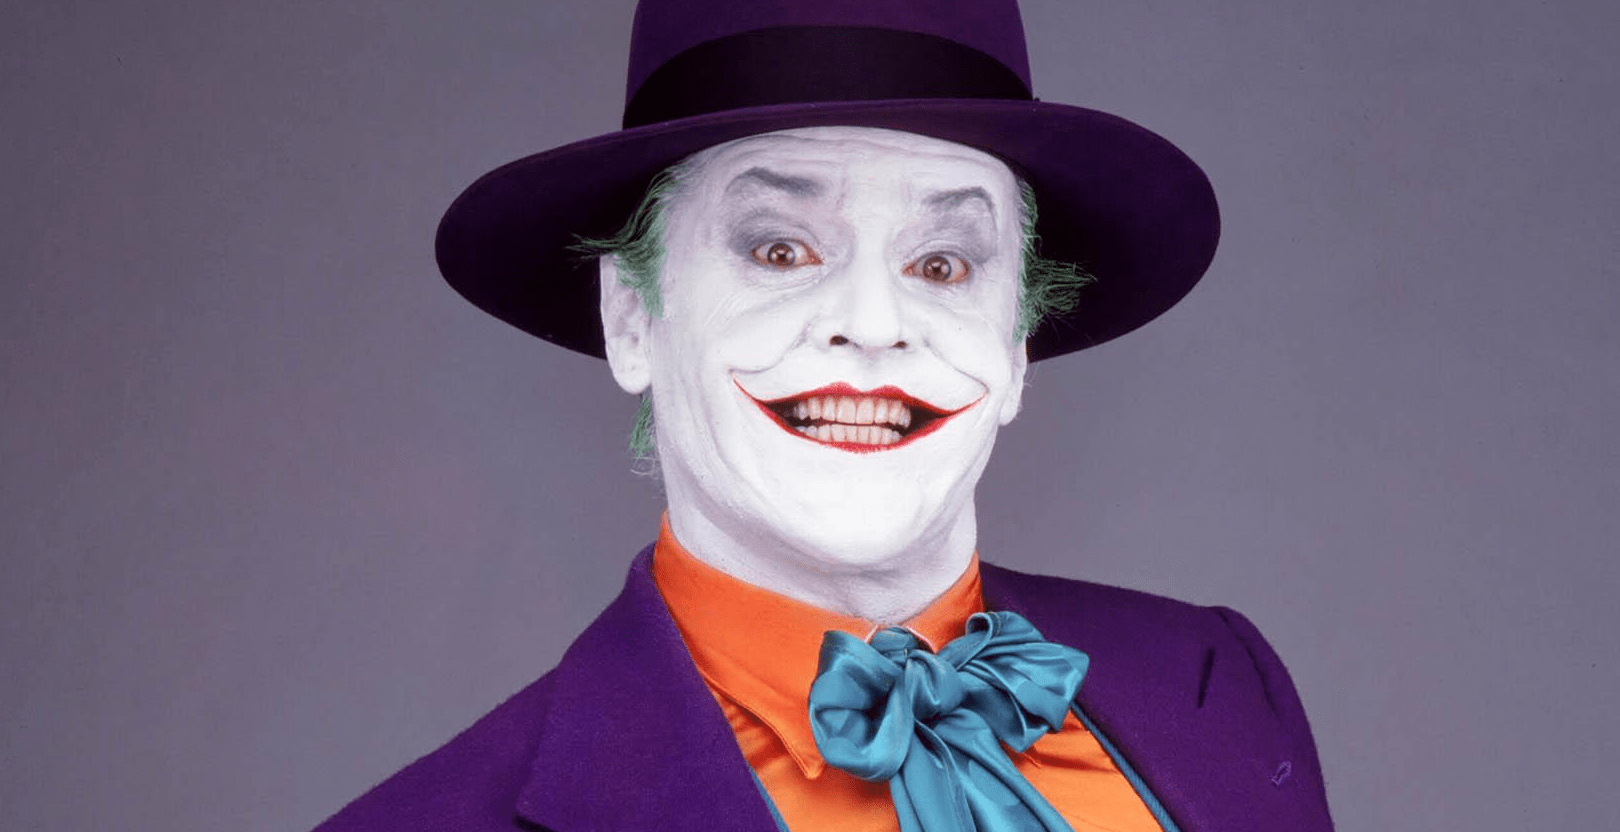 Warner Bros. Reportedly Sets Sights On Leonardo DiCaprio For The Joker